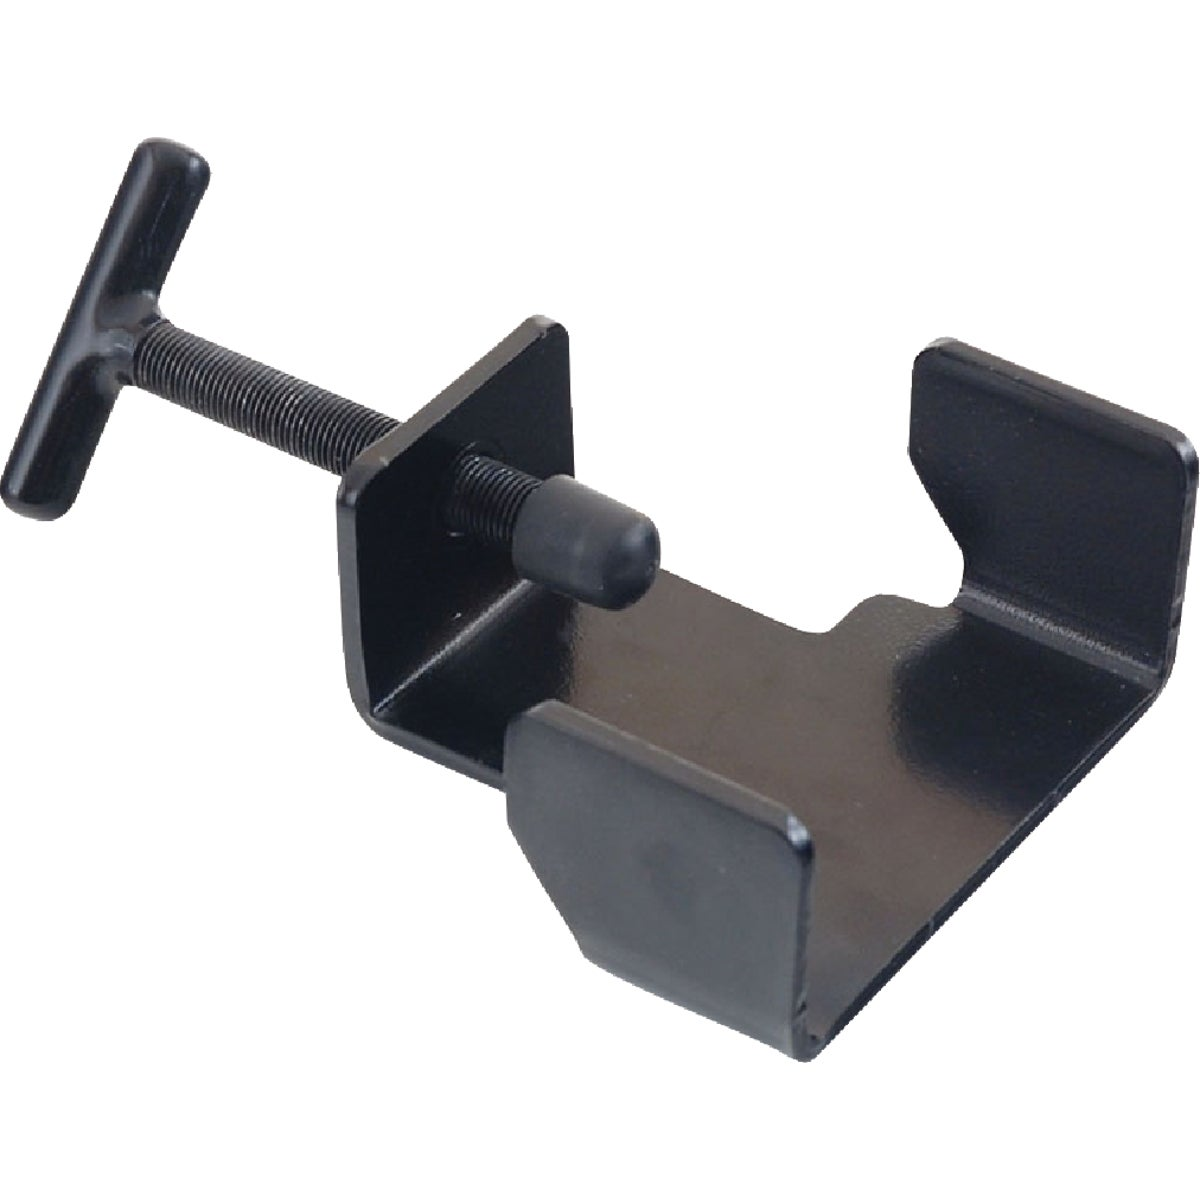 LAWNMOWER BLADE CLAMP